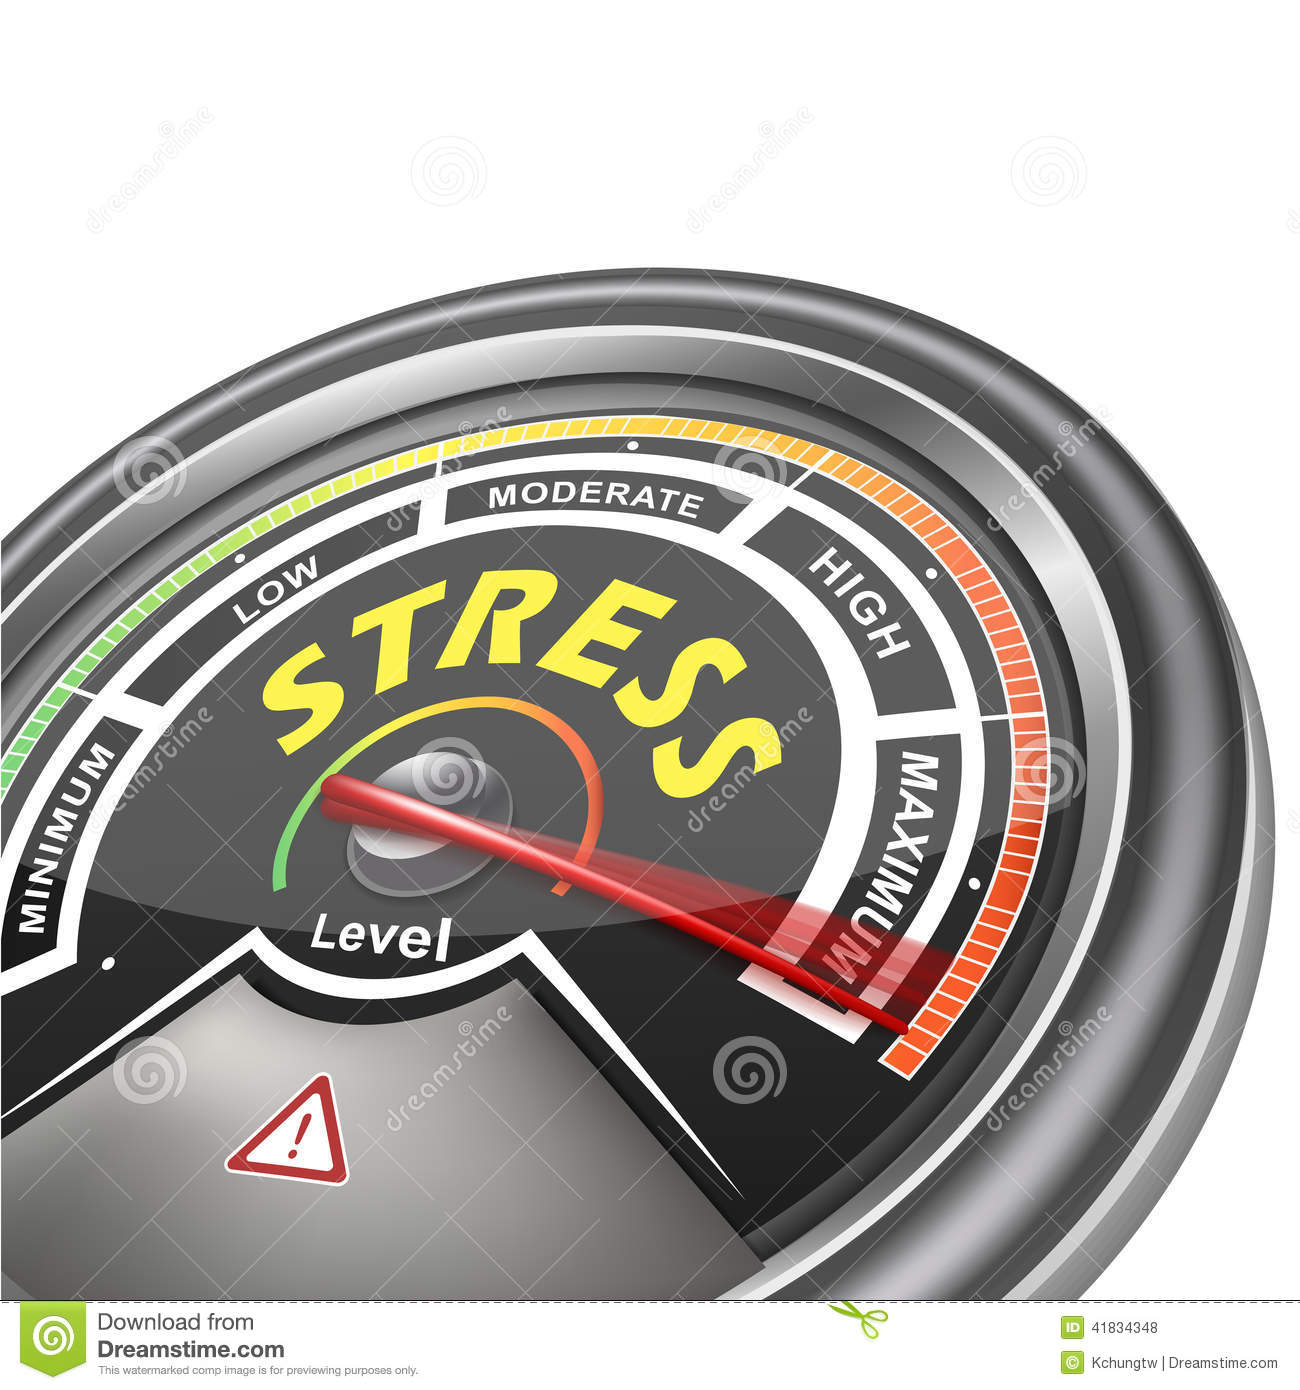 Stress Level Meter : Vector stress conceptual meter indicator stock